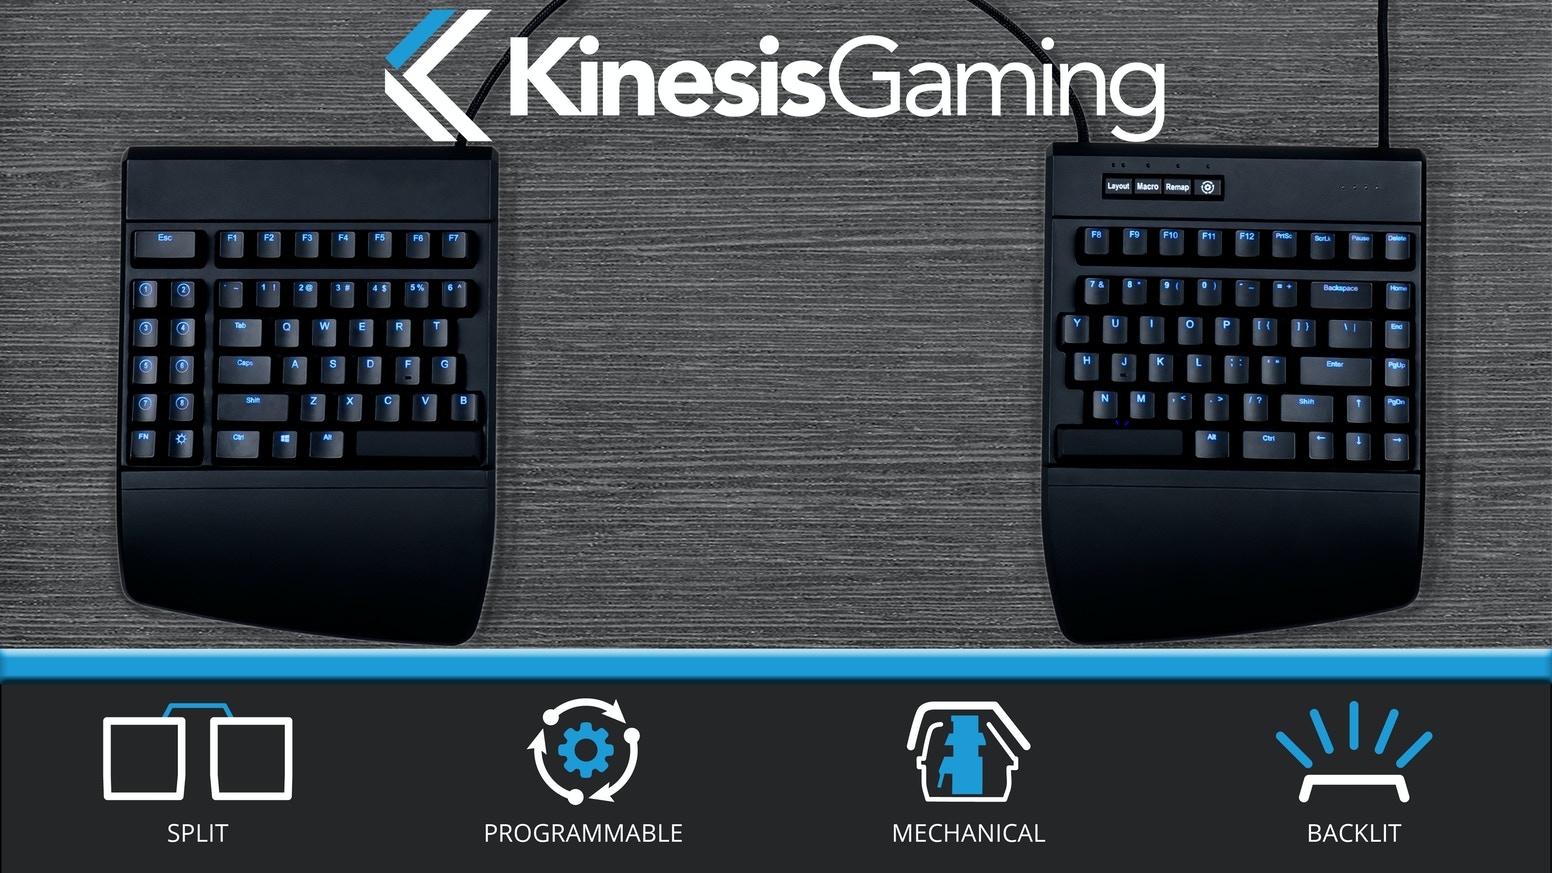 658250f5c4be1 The first split keyboard designed specifically for gamers. Onboard  programmable